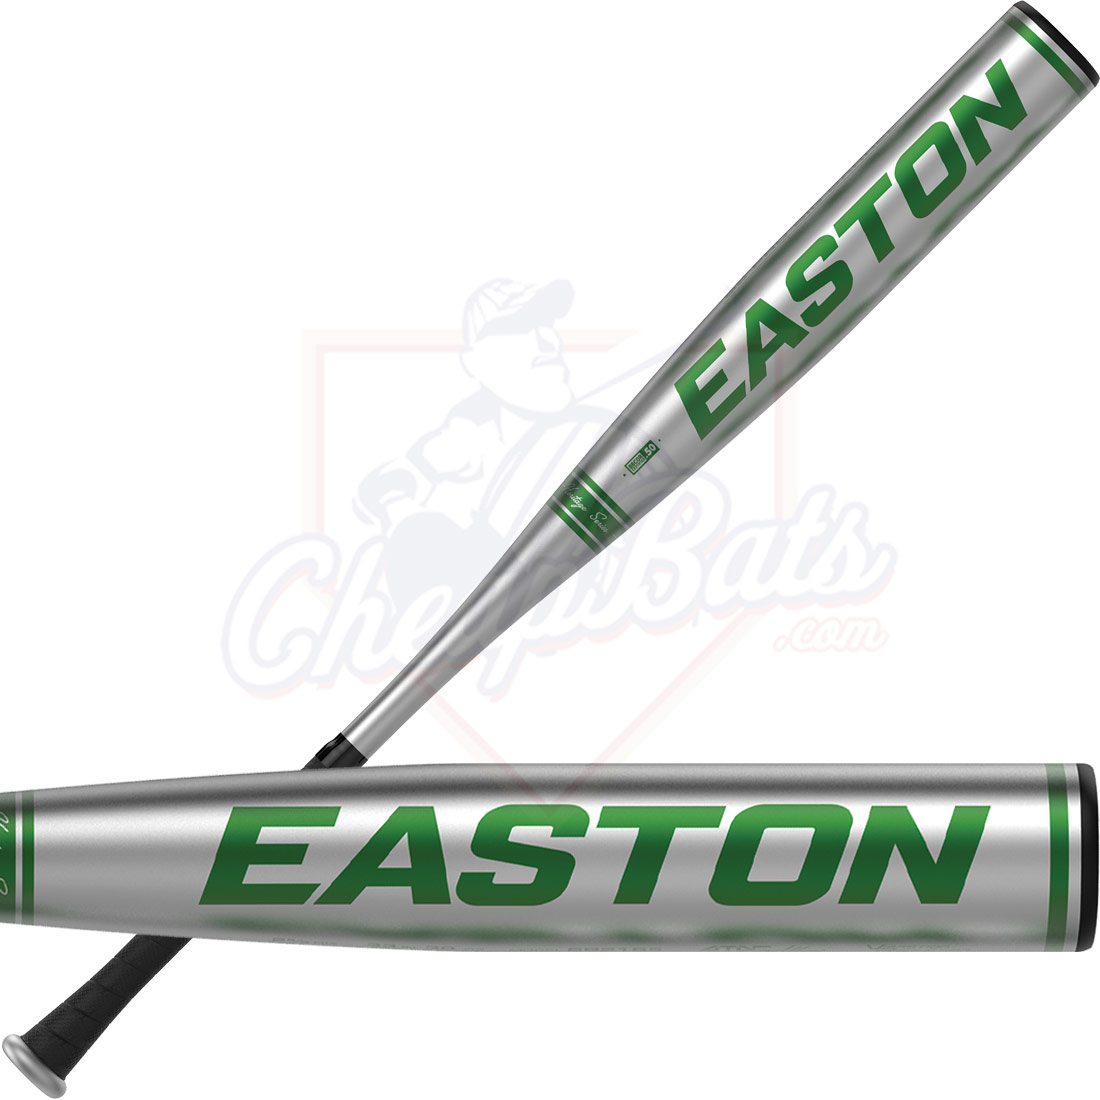 2021 Easton B5 Pro Big Barrel BBCOR Baseball Bat -3oz BB21B5